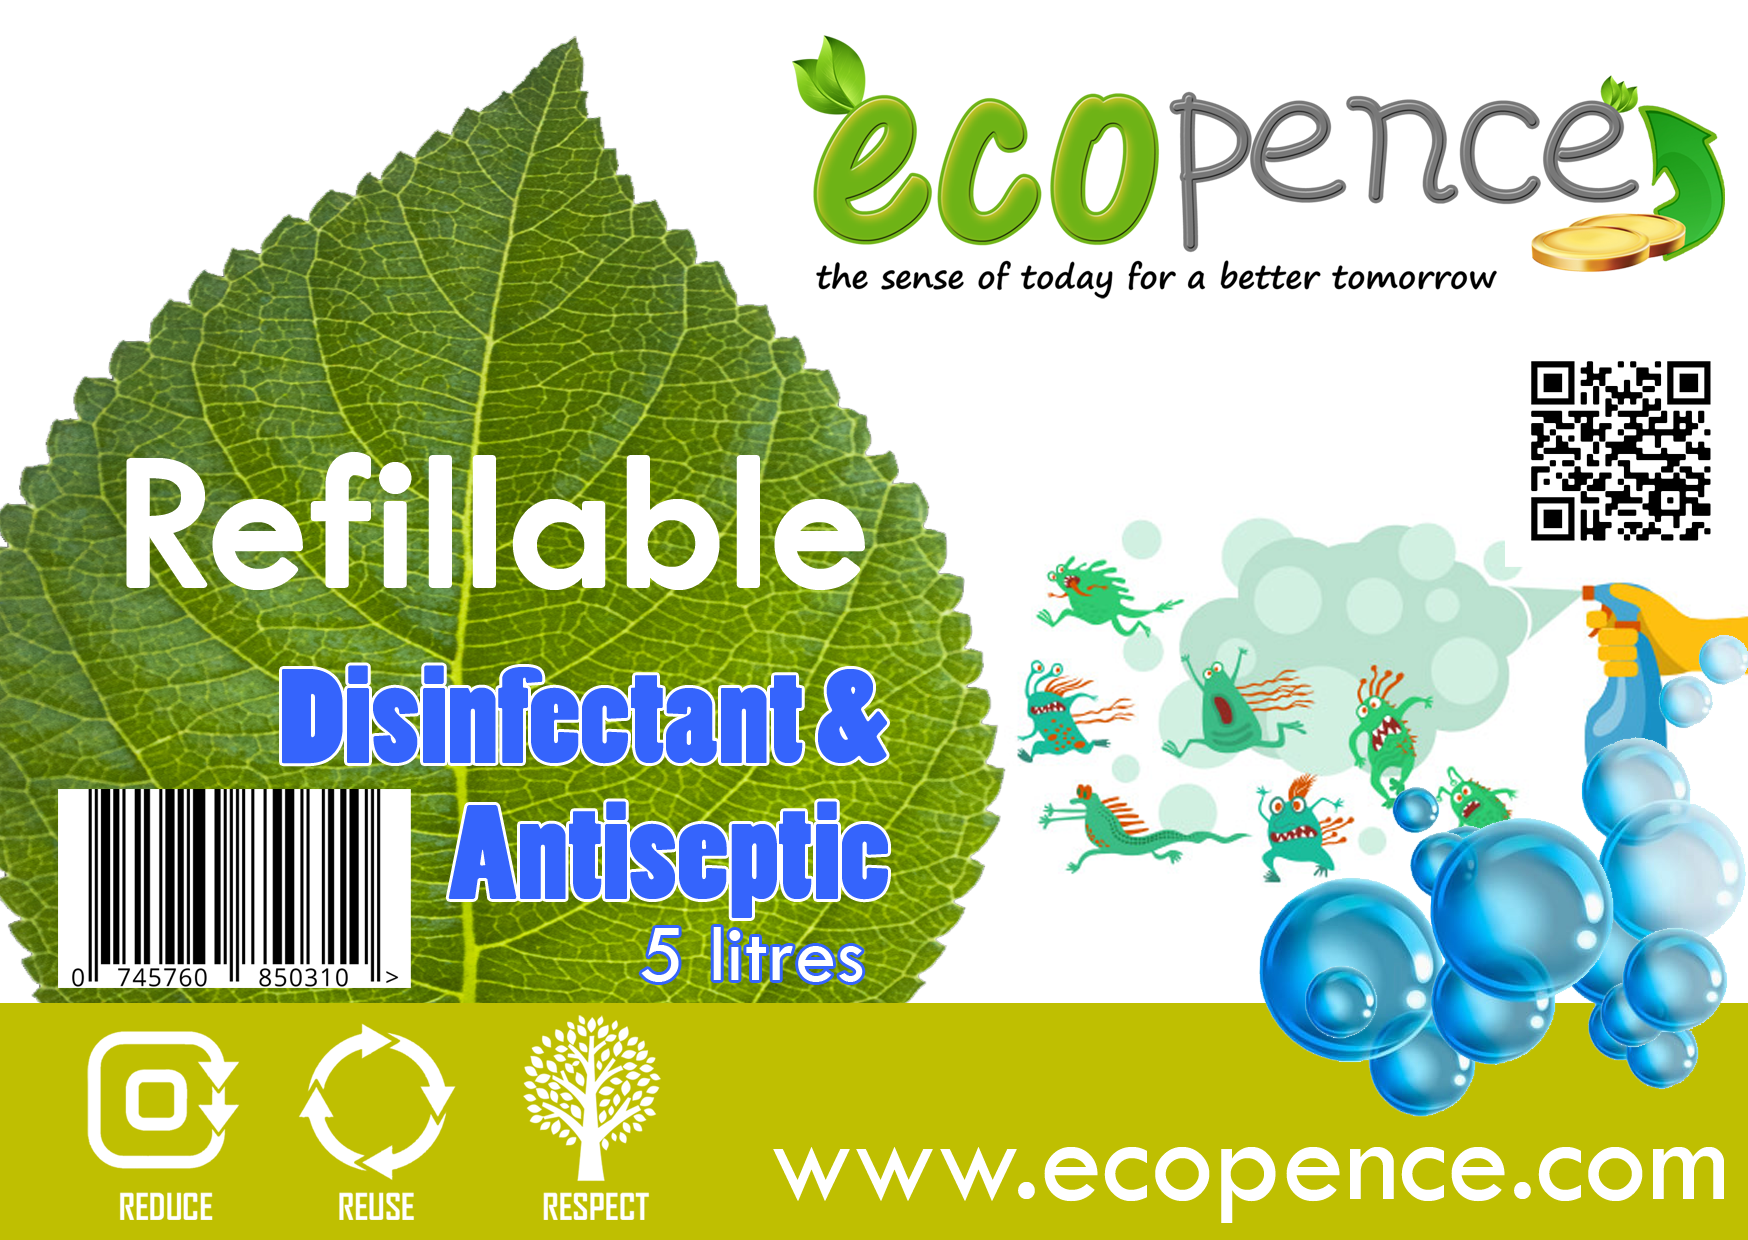 Ecopence disinfectant and antispetic